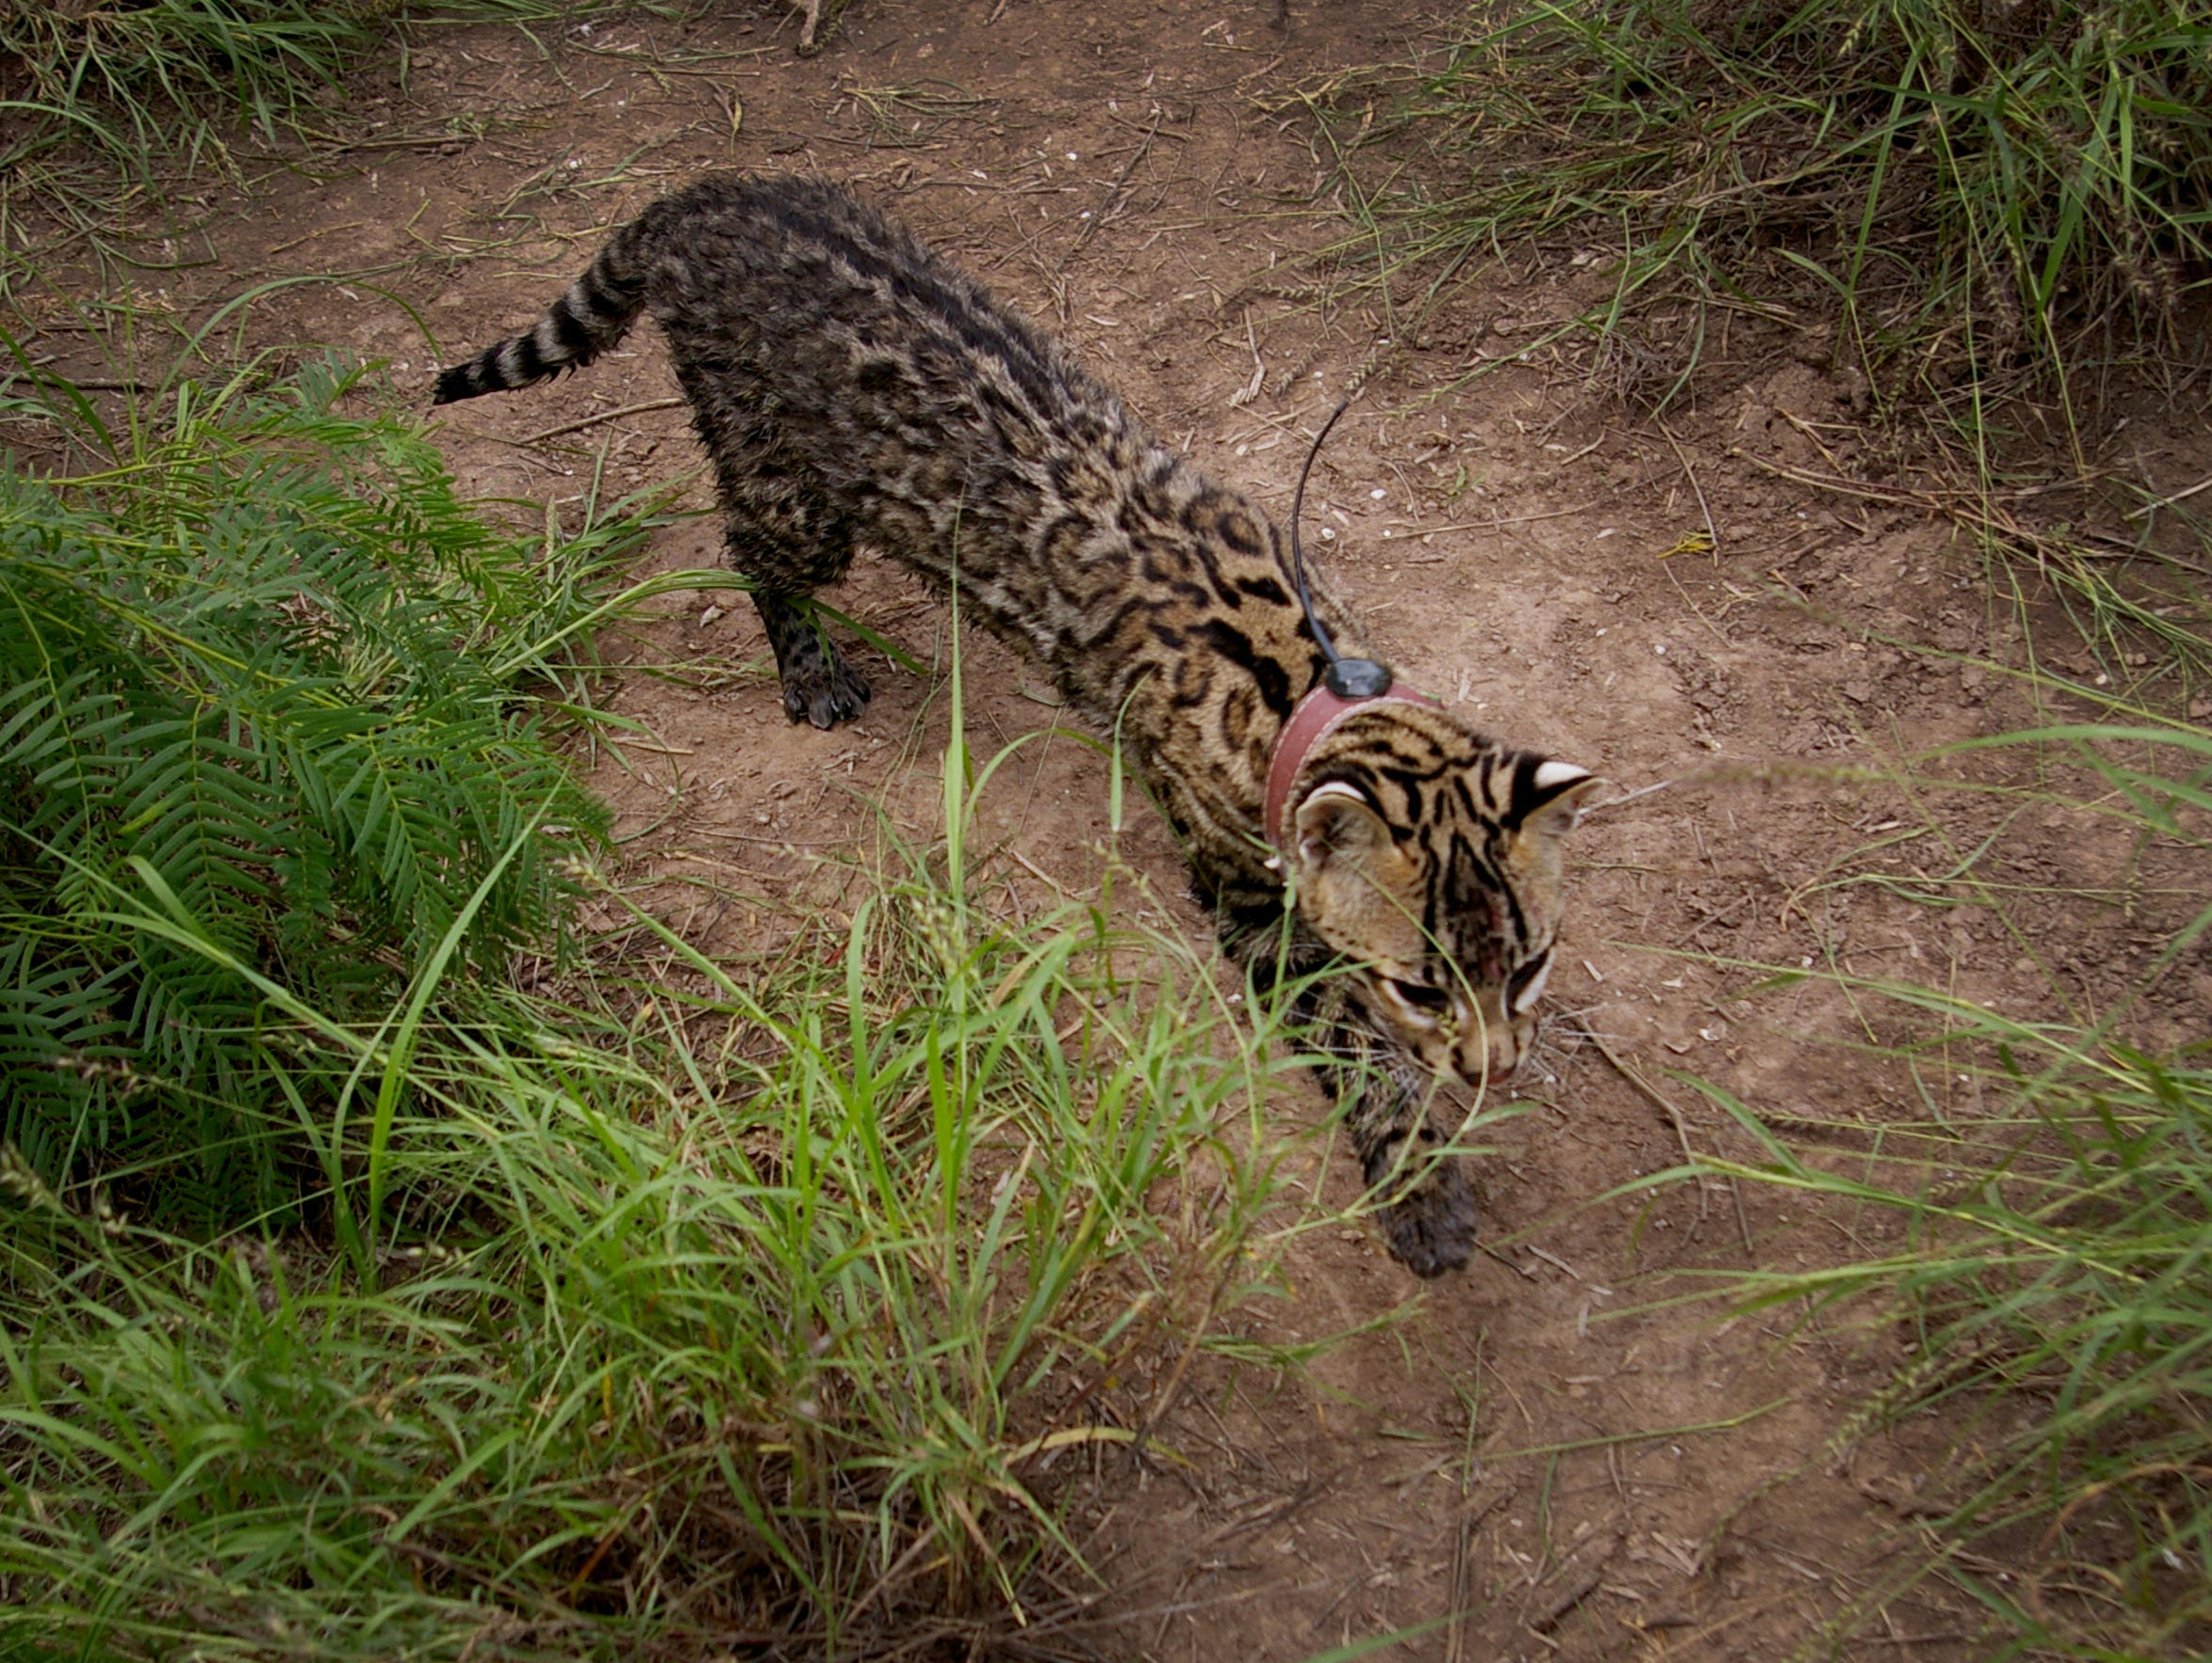 An ocelot released after capture at Laguna Atascosa